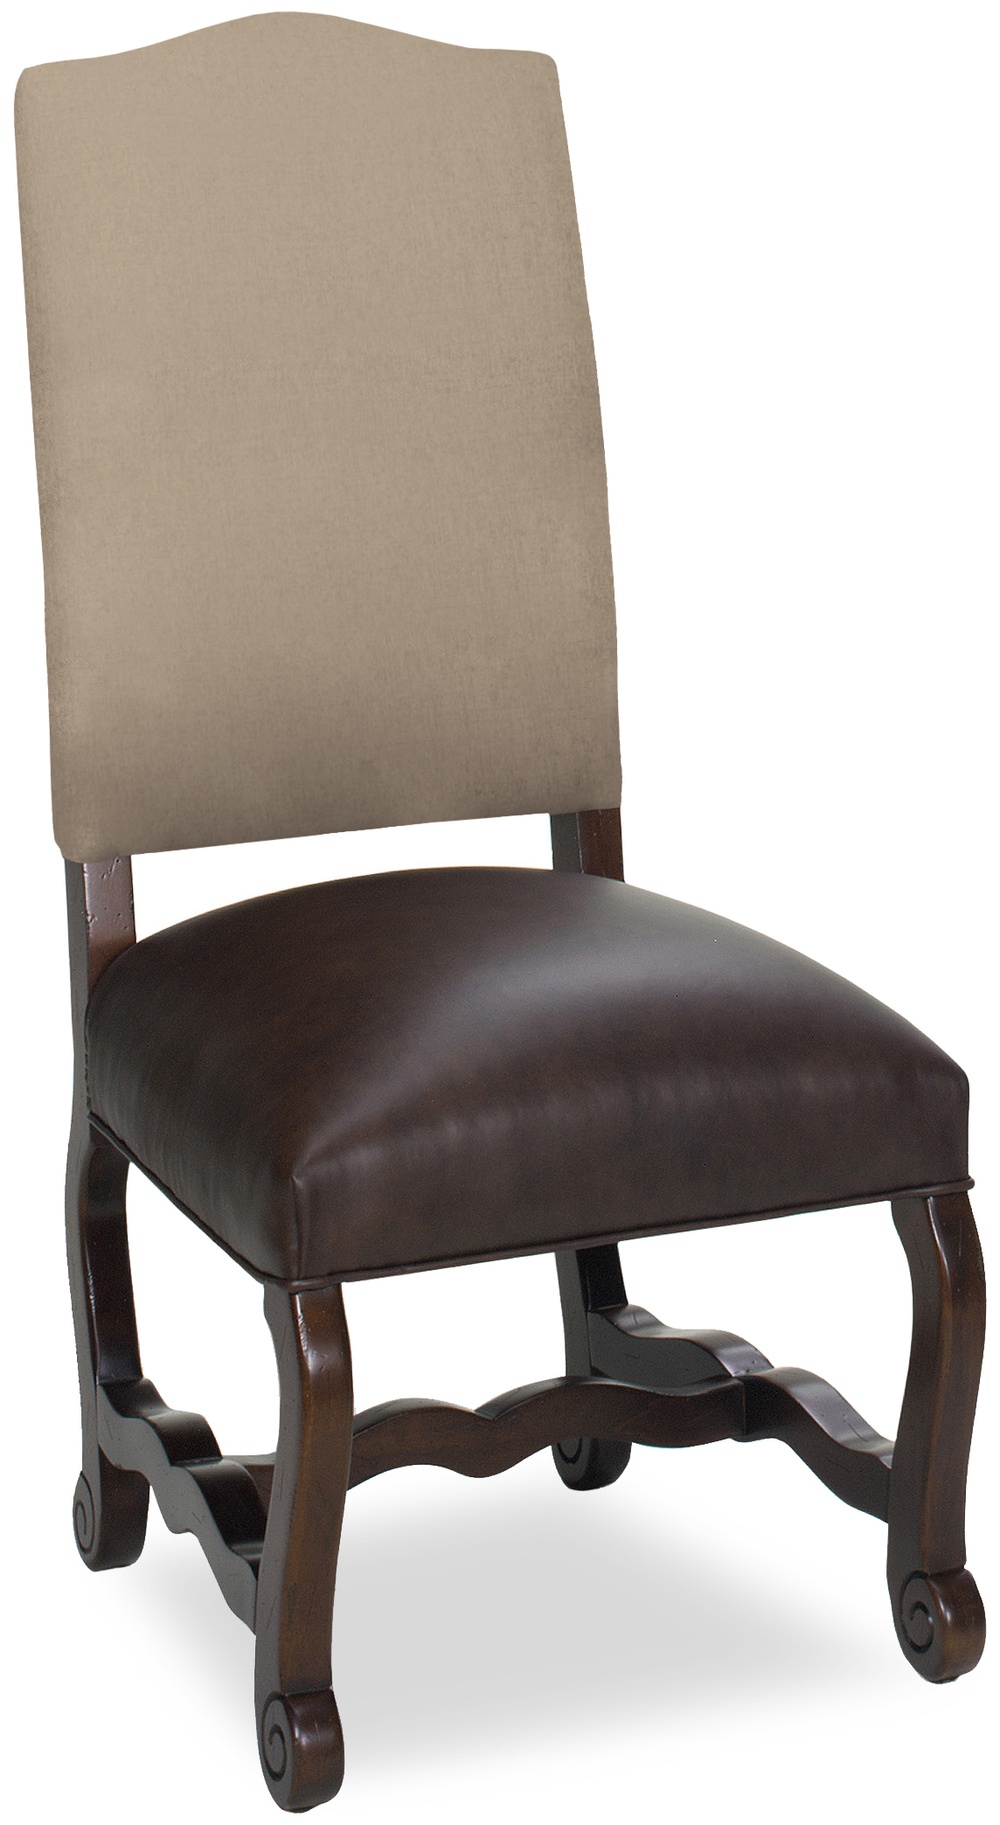 Parker Southern - Carlyle Armless Chair